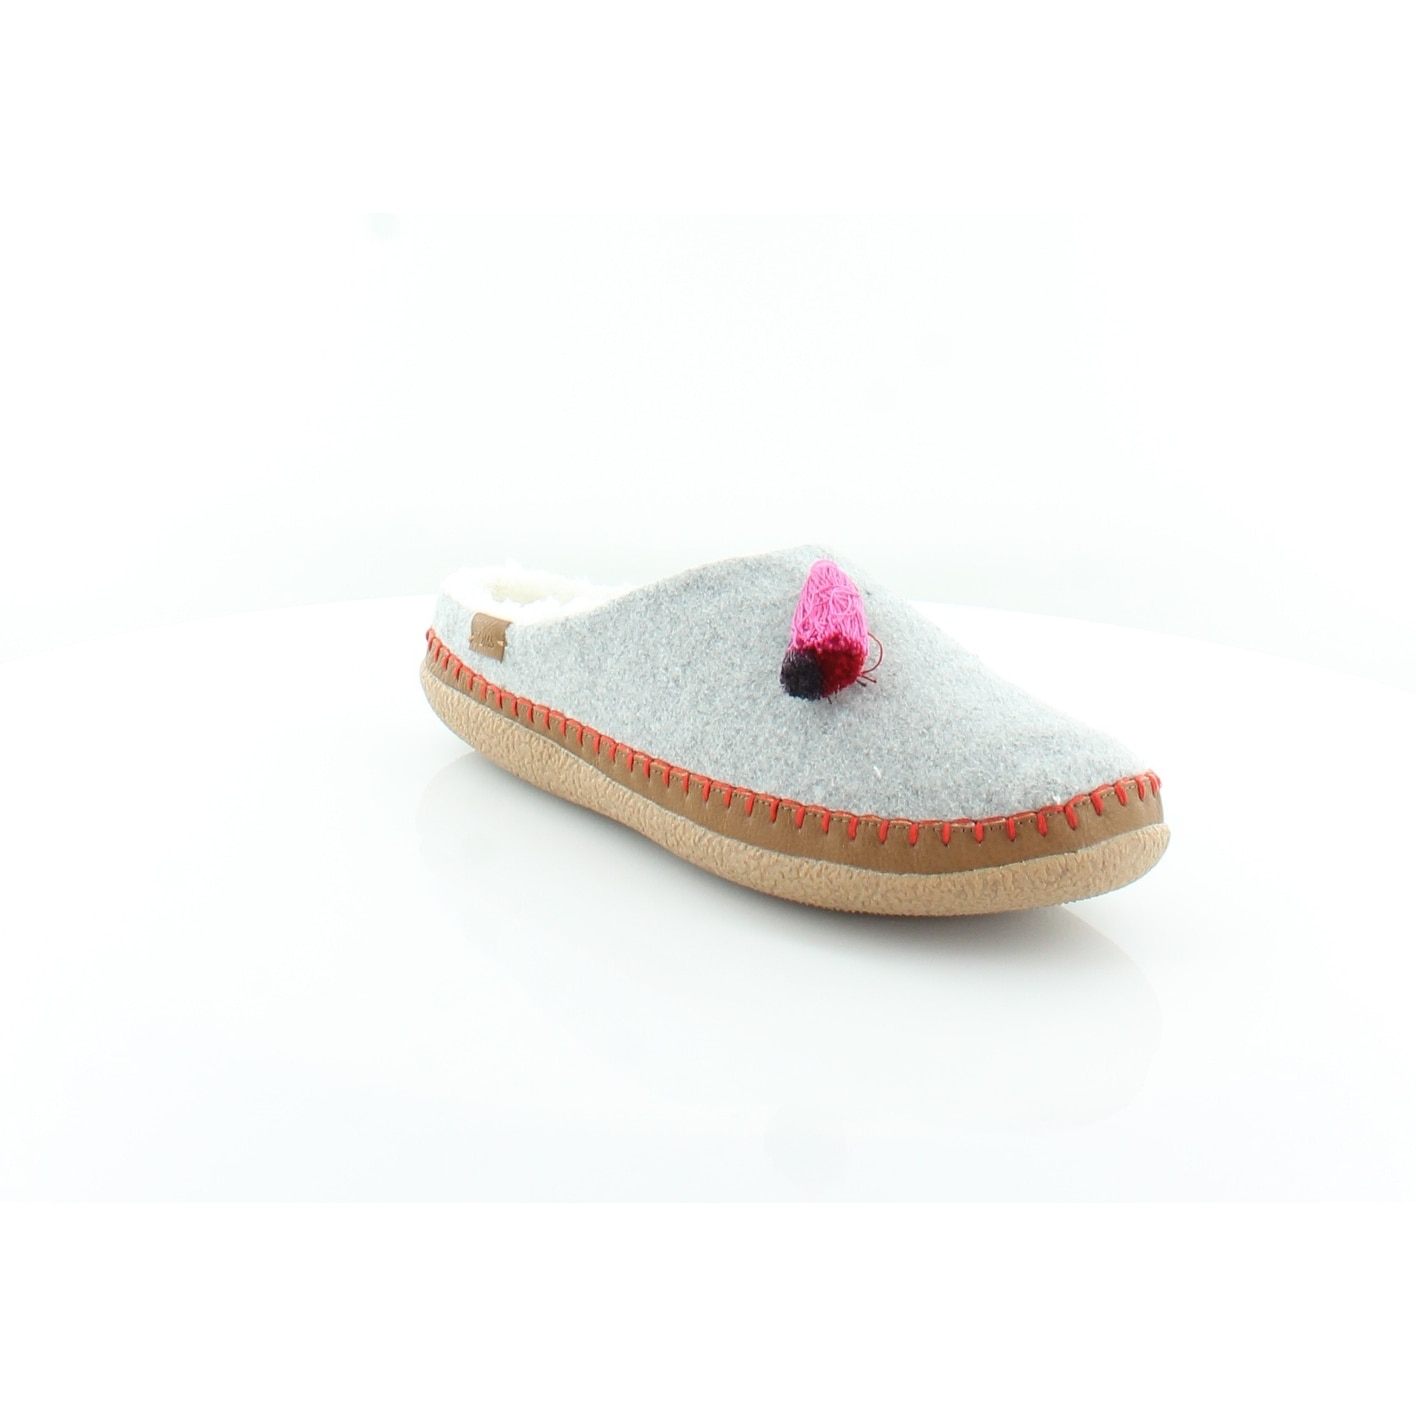 950bcb8b94f Shop TOMS Classic Ivy Women s Slippers Drizzle Grey - Free Shipping On  Orders Over  45 - Overstock - 25616180